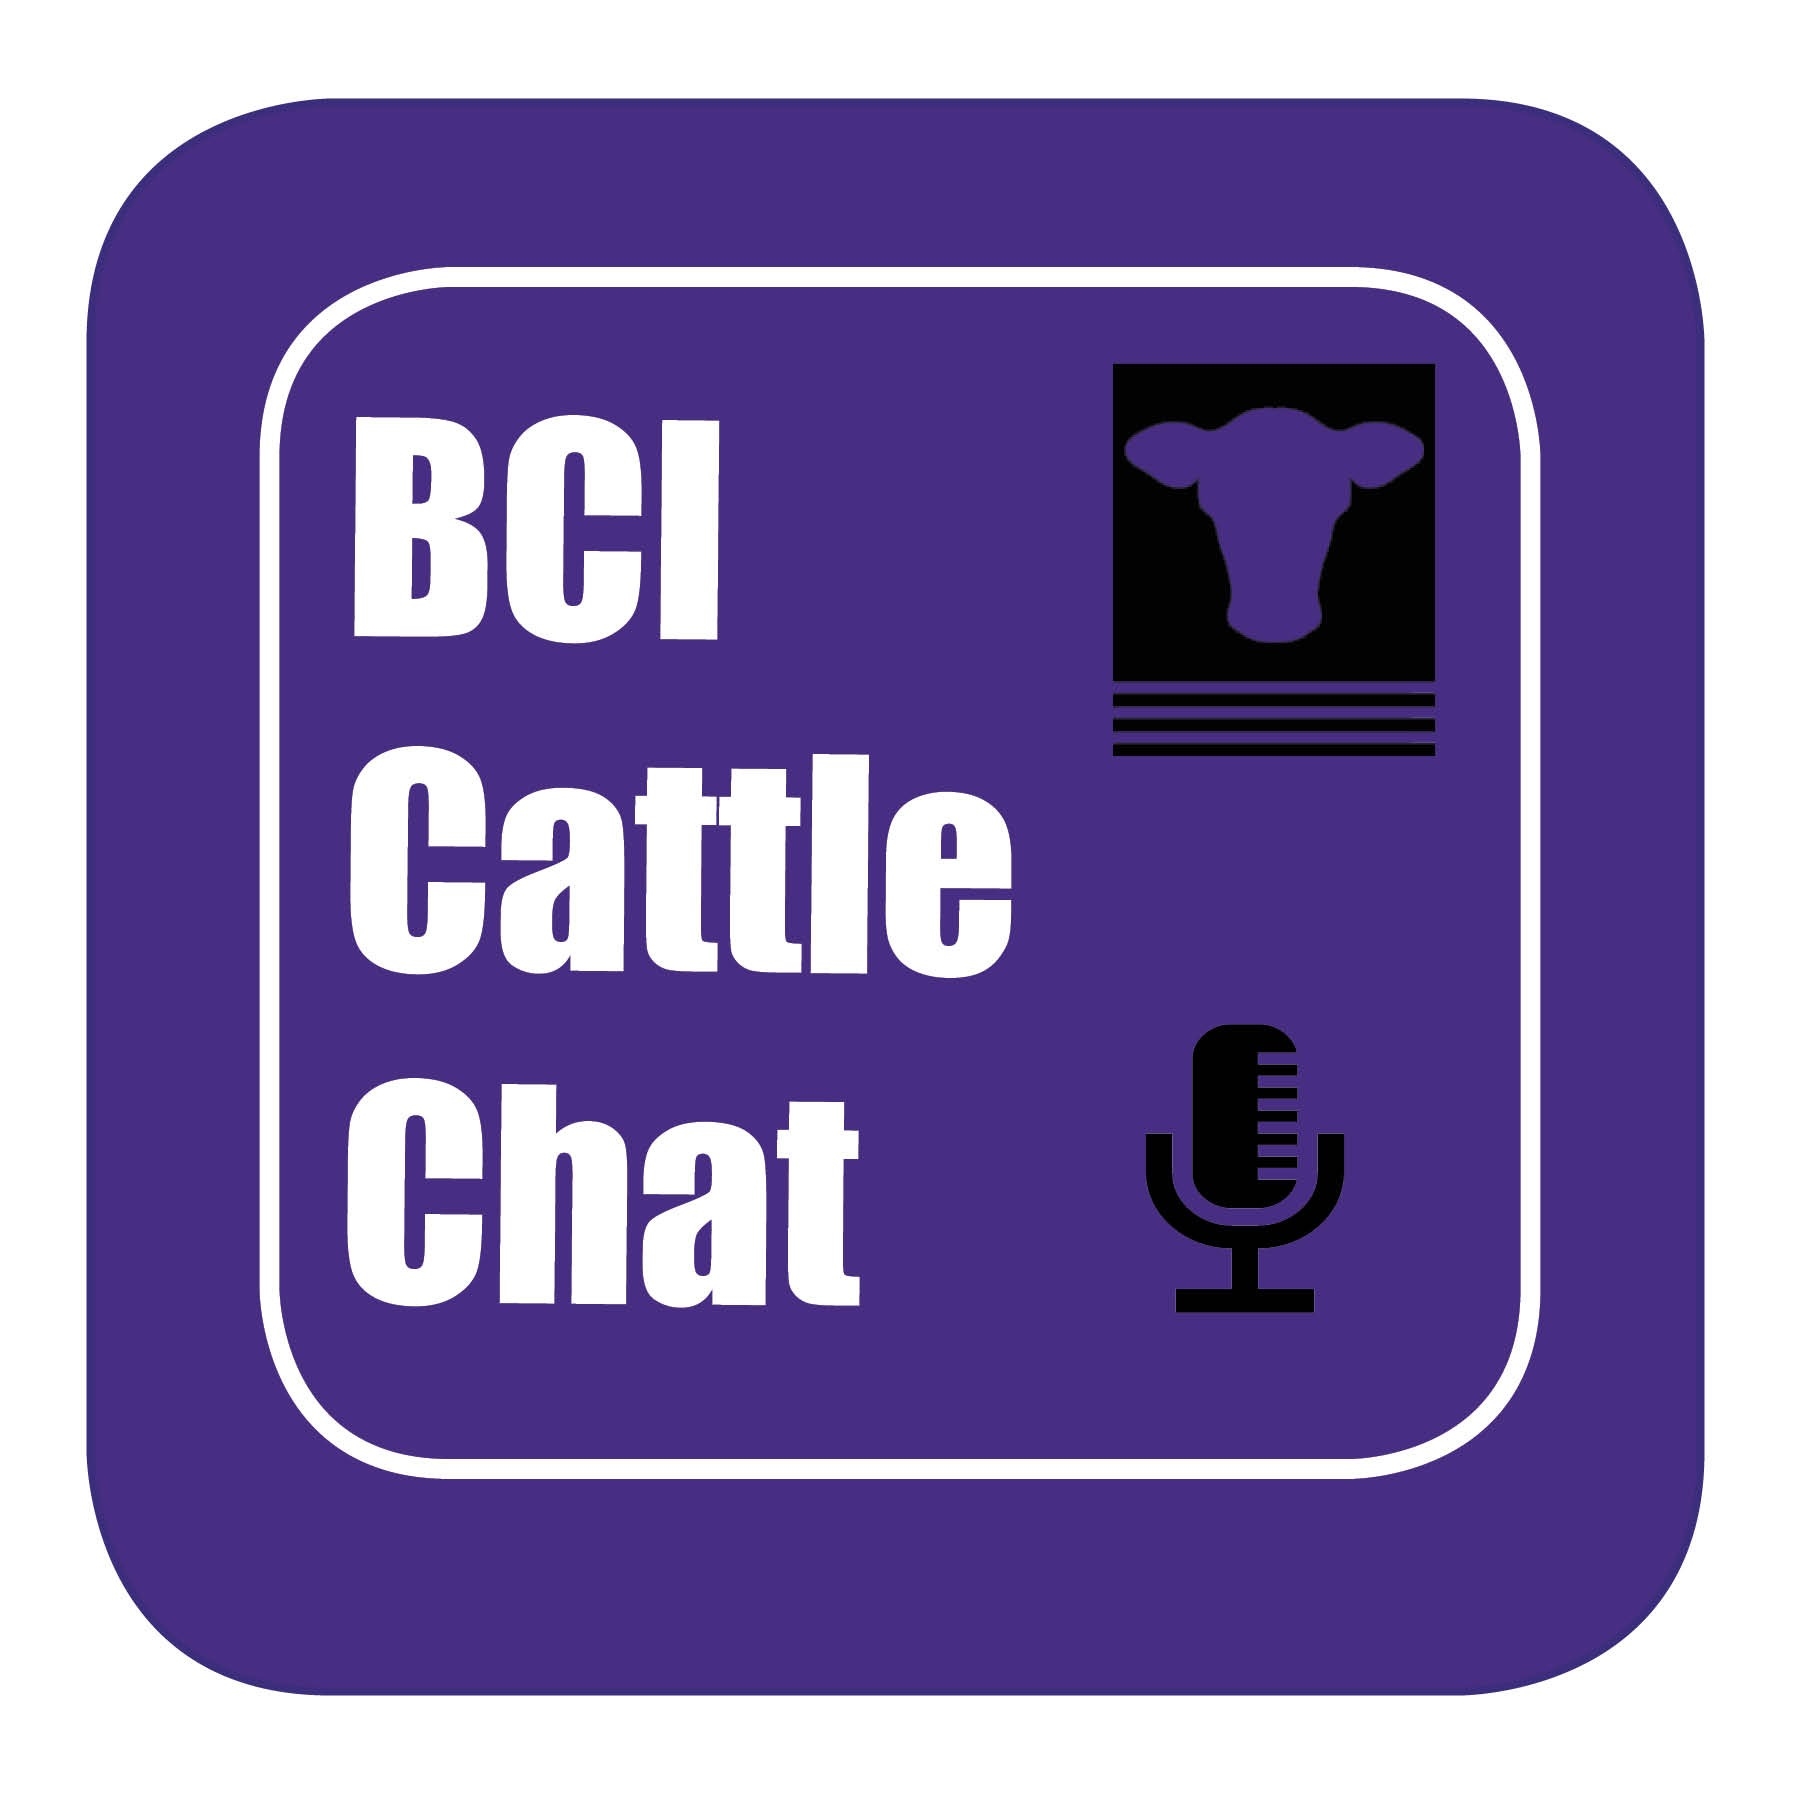 BCI Cattle Chat - Episode 30